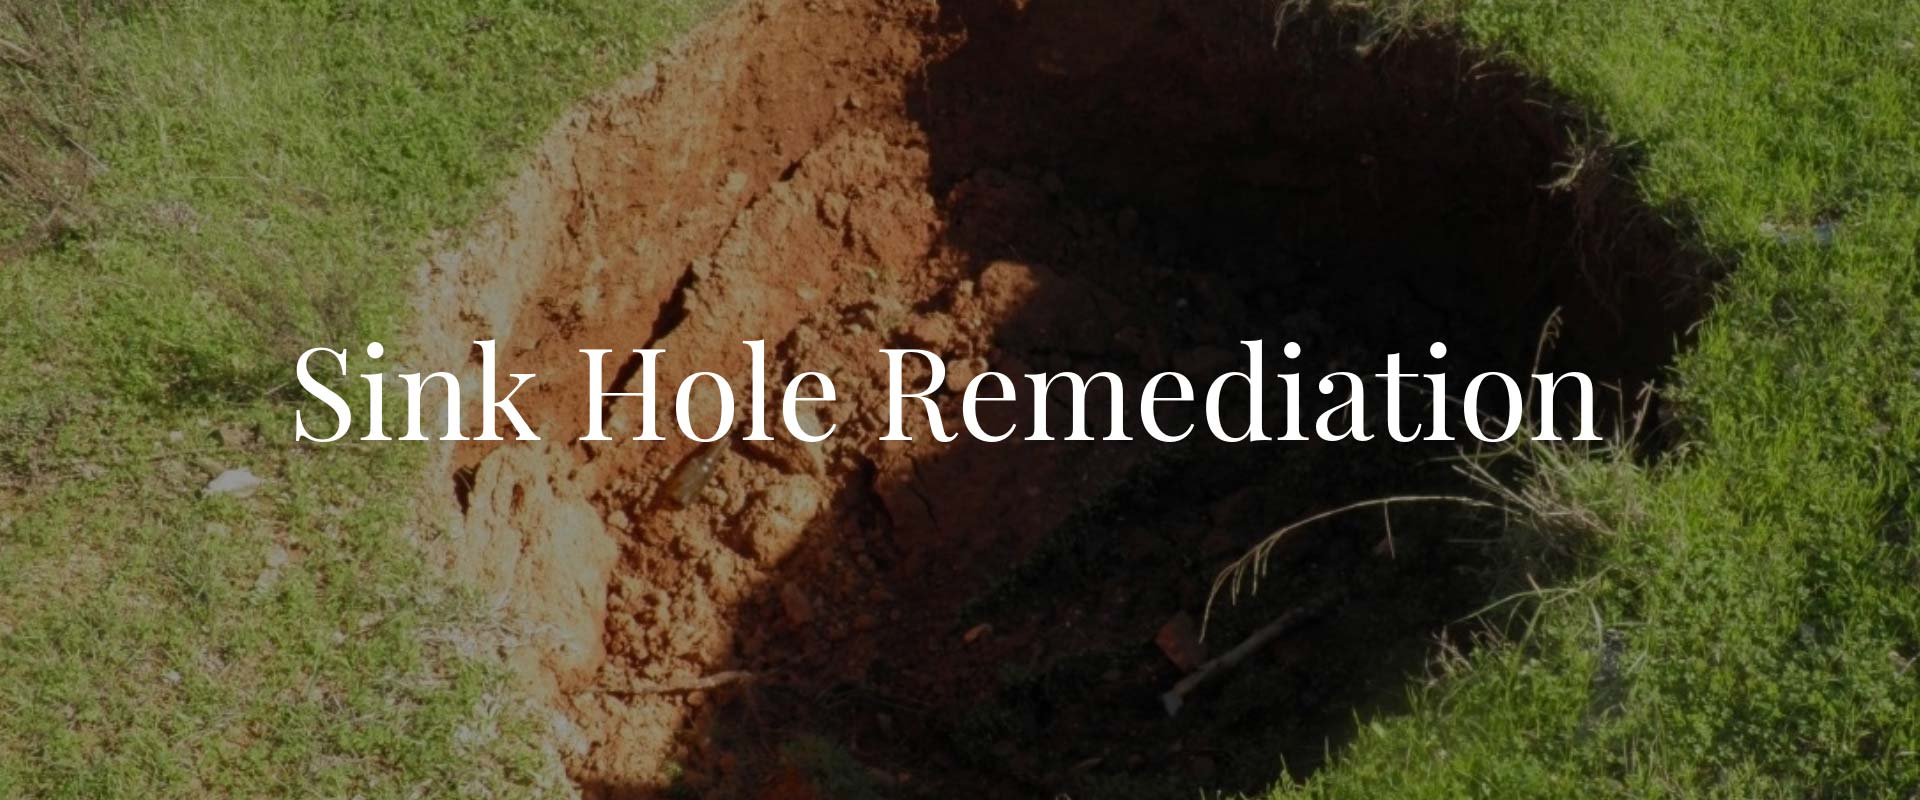 sink-hole-remediation-header